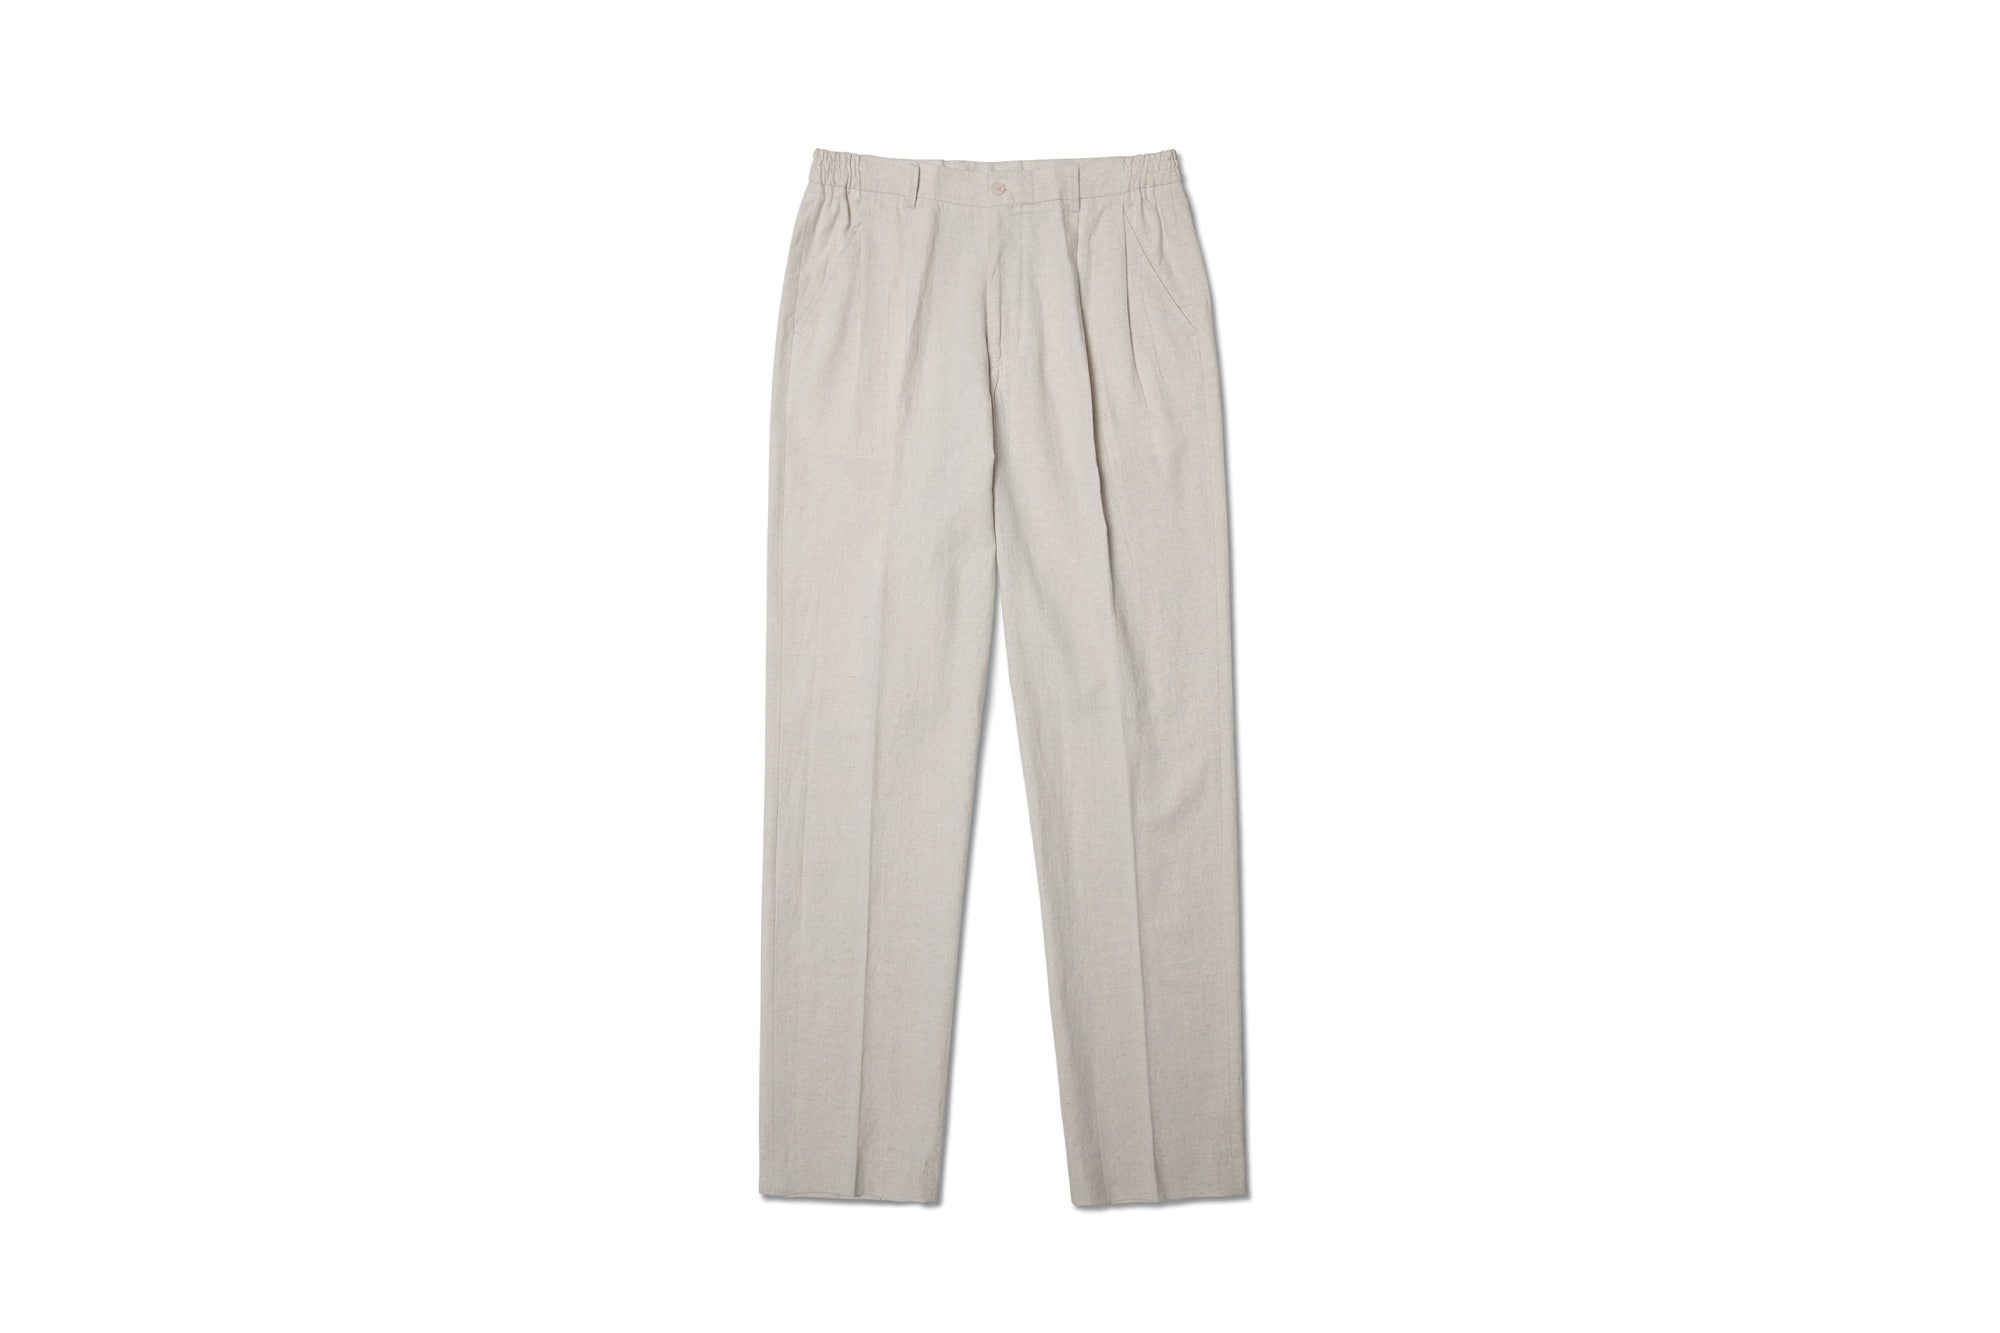 19ss Linen nice pants Beige [NIDDLE AND STITCH]